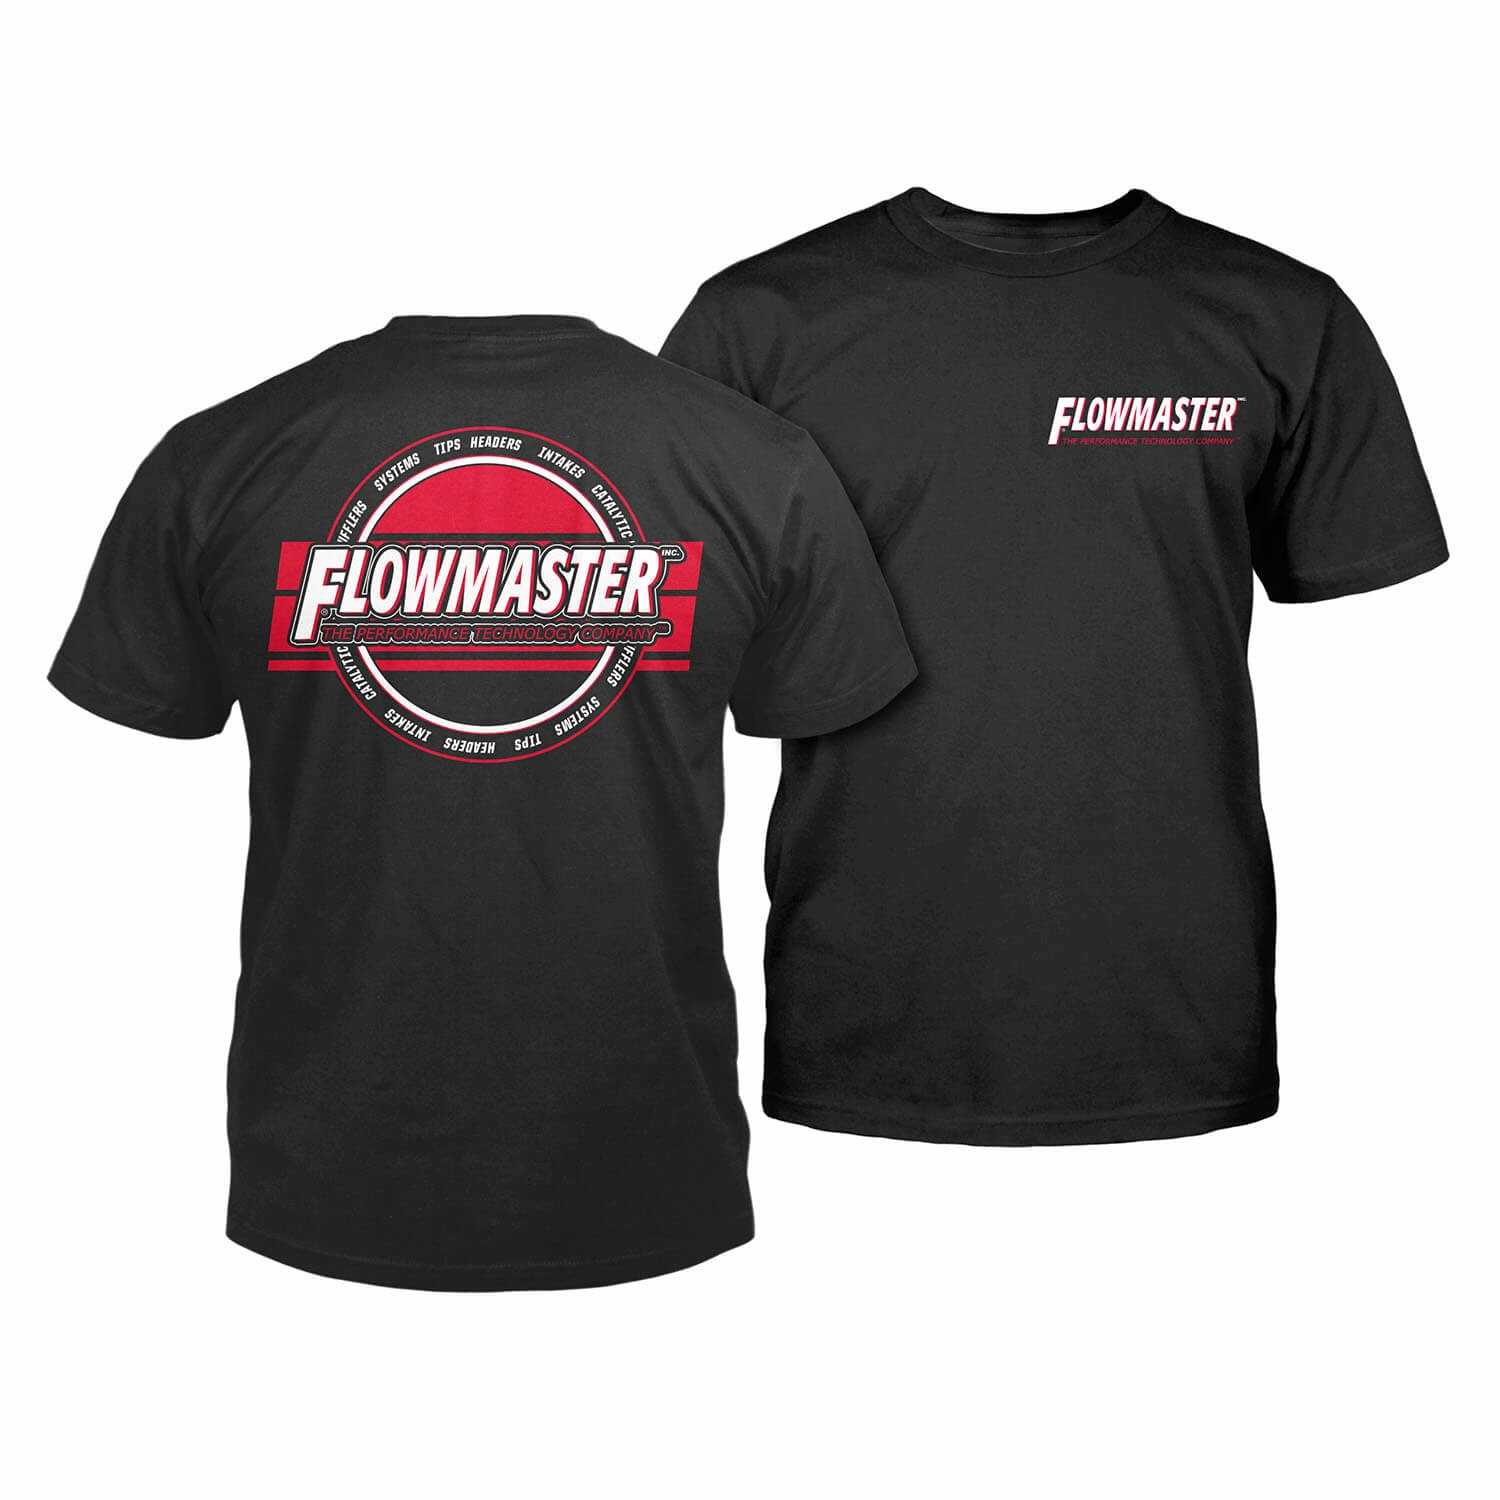 610354 Flowmaster Technology Performance T-Shirt